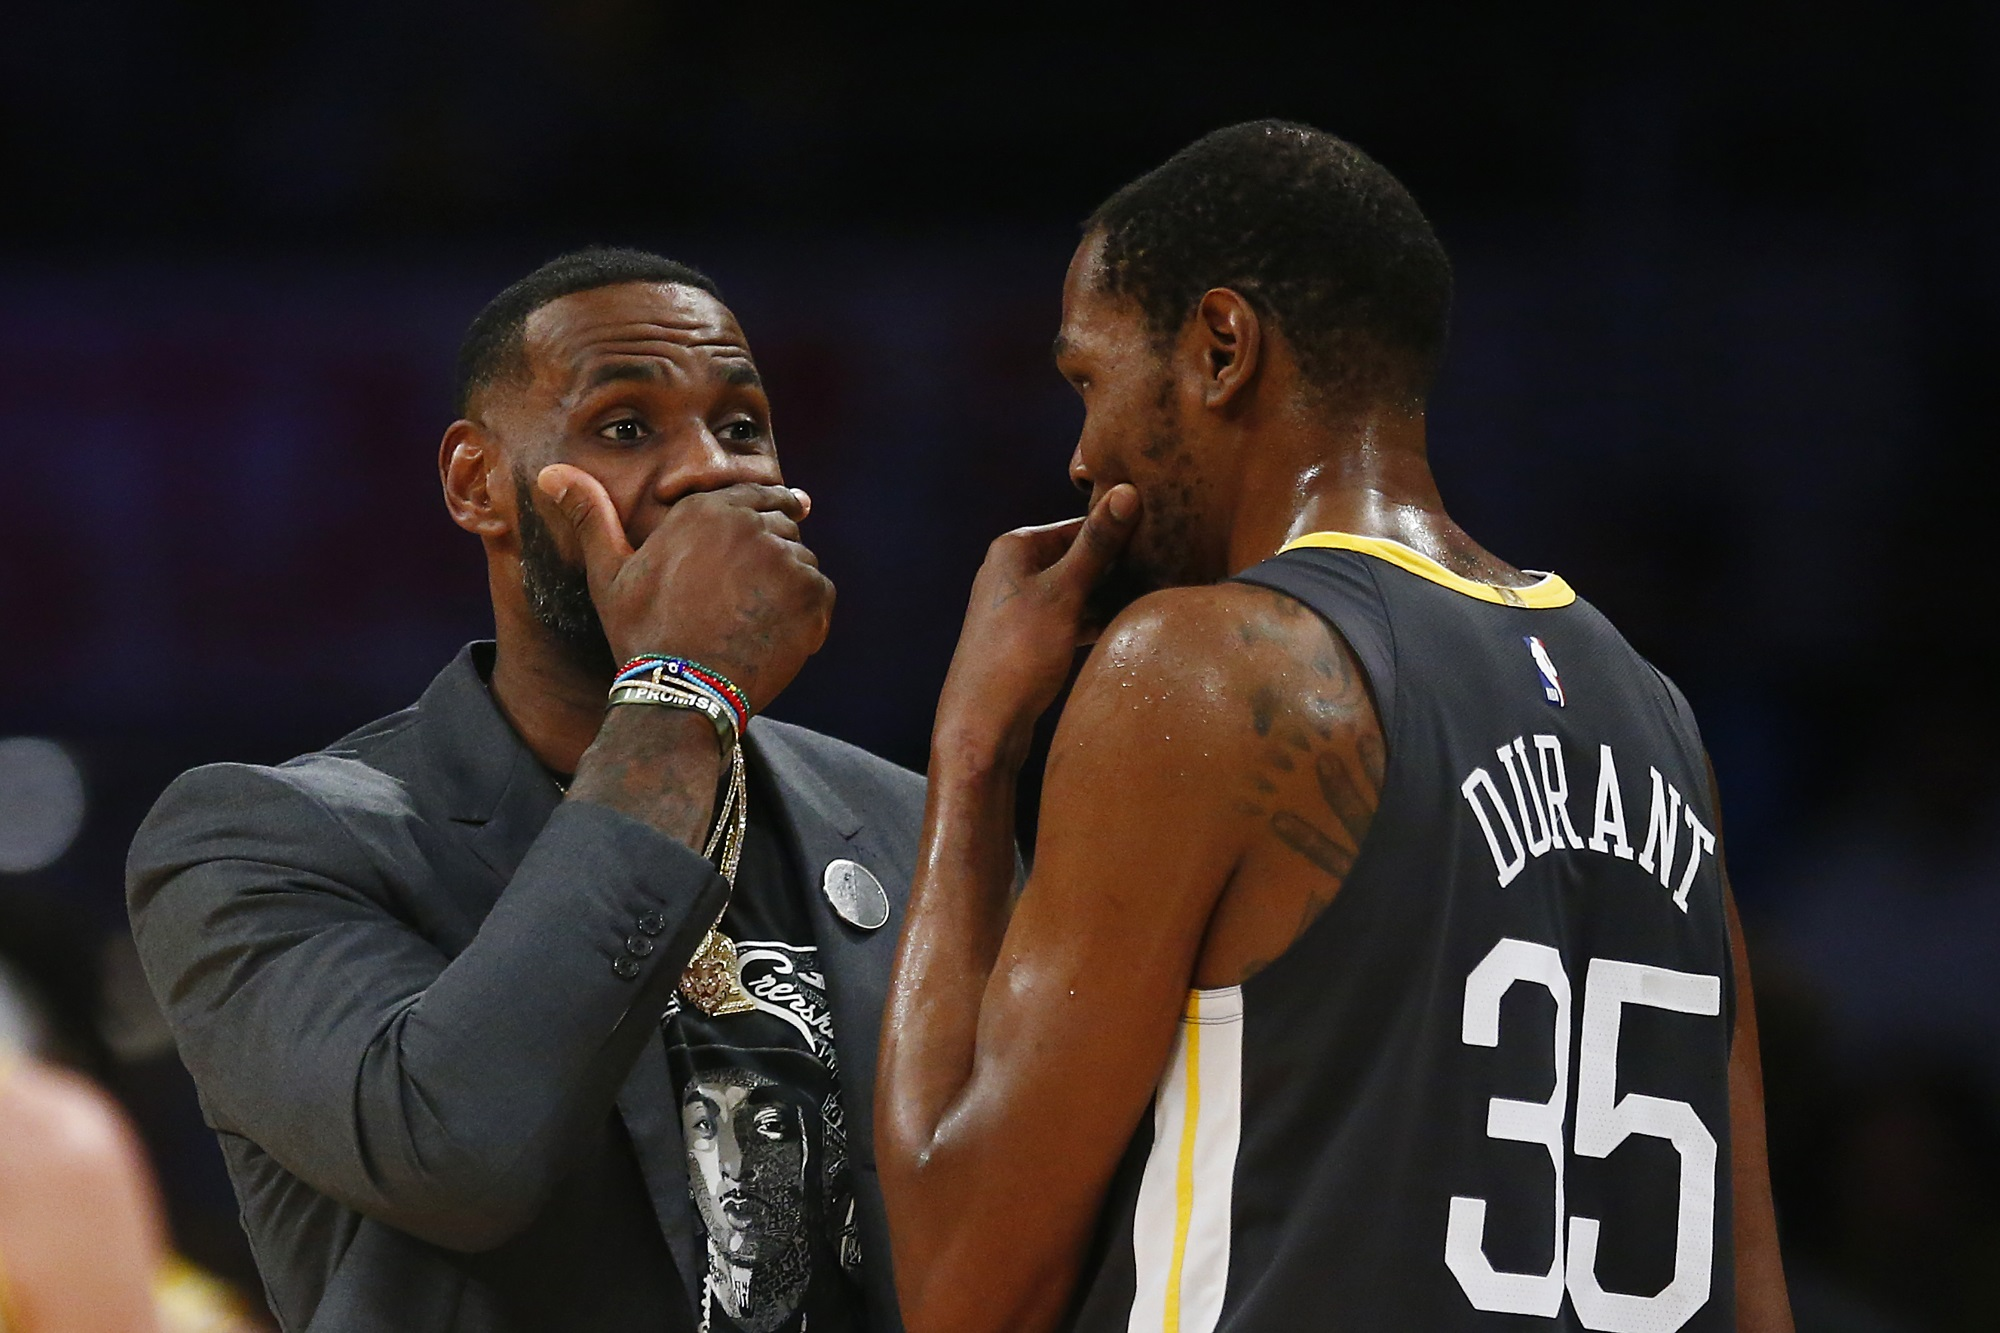 LeBron James and Kevin Durant, Los Angeles Lakers vs Golden State Warriors at Staples Center